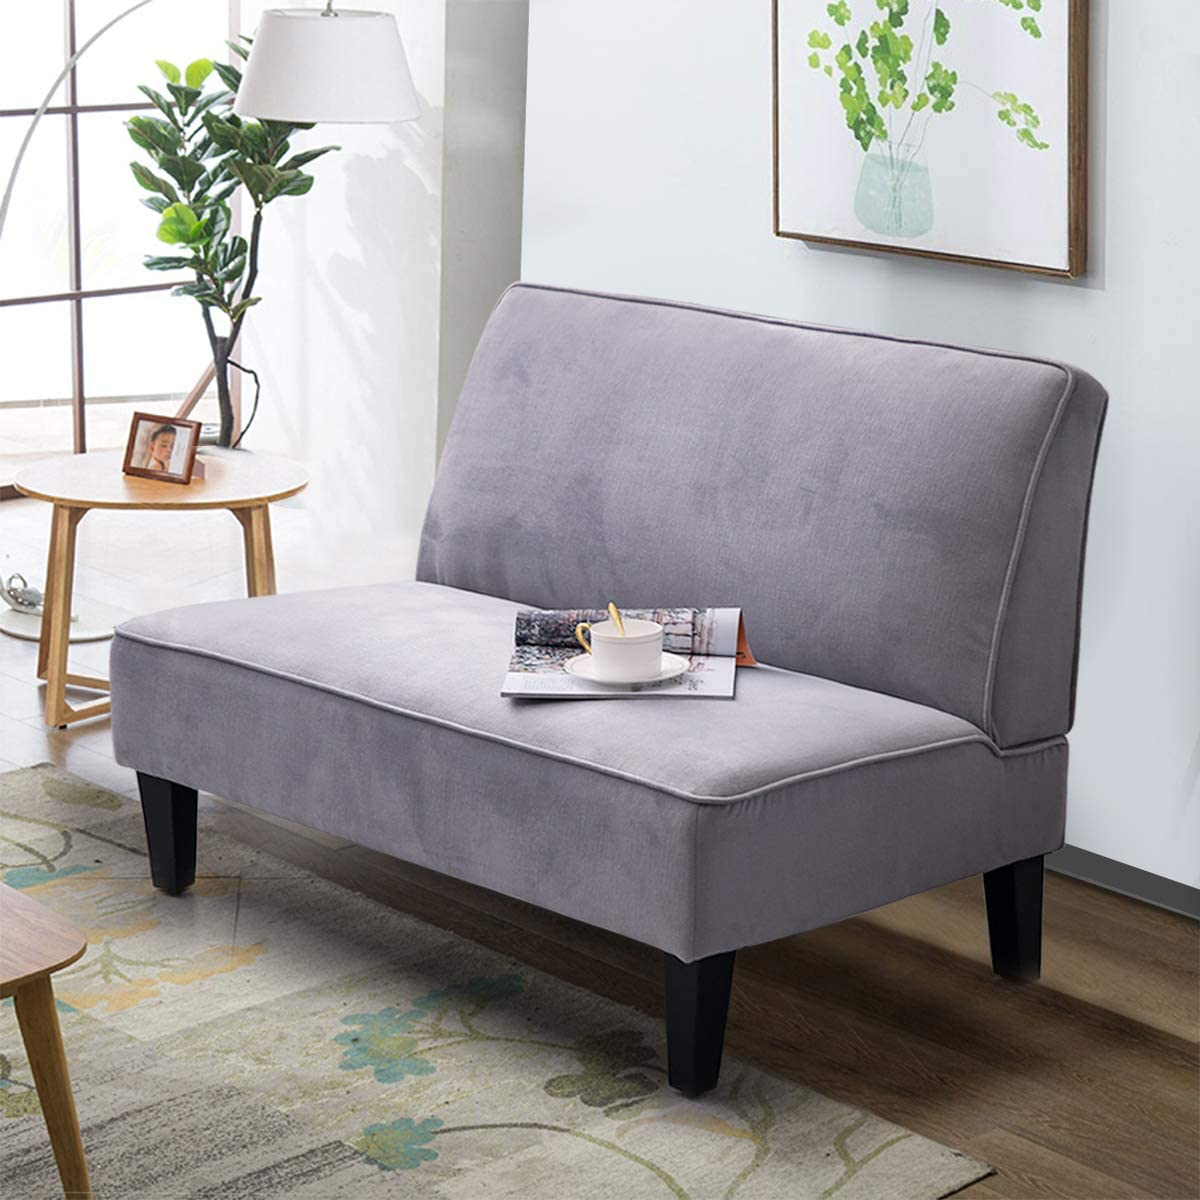 Alunaune Upholstered Settee Loveseat Bench Cushioned Linen Armless Sofa Couch Home Casual Living Room Sleeper Light Grey